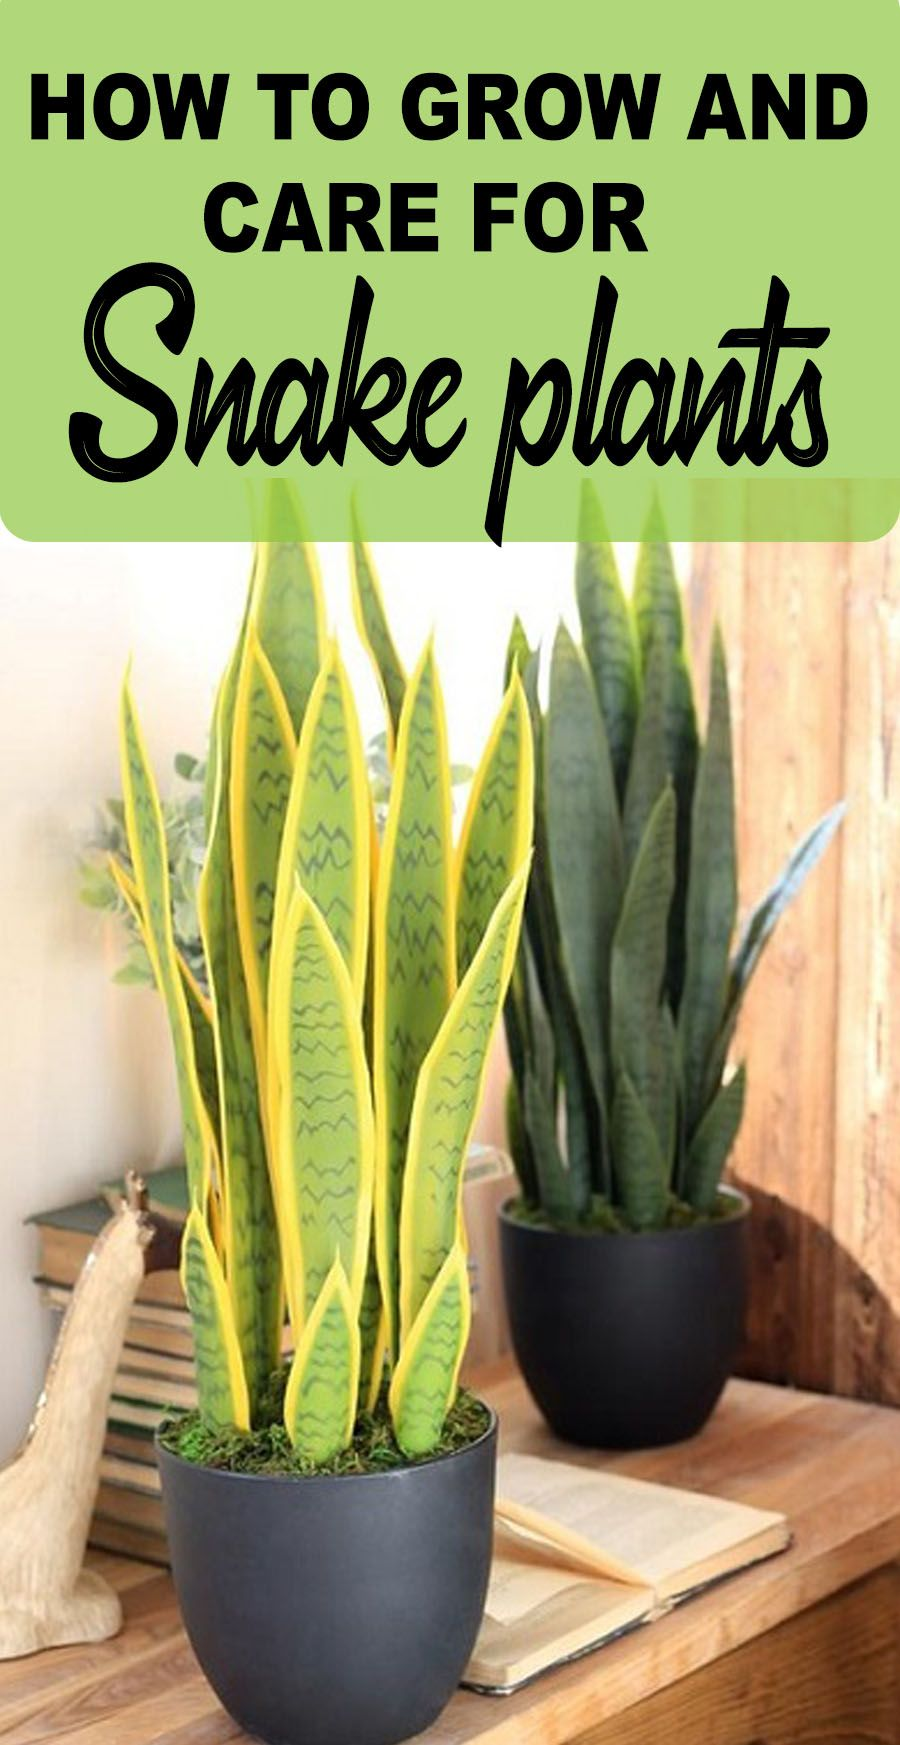 SNAKE PLANT CARE GROWING THE MOTHER IN LAW'S TONGUE